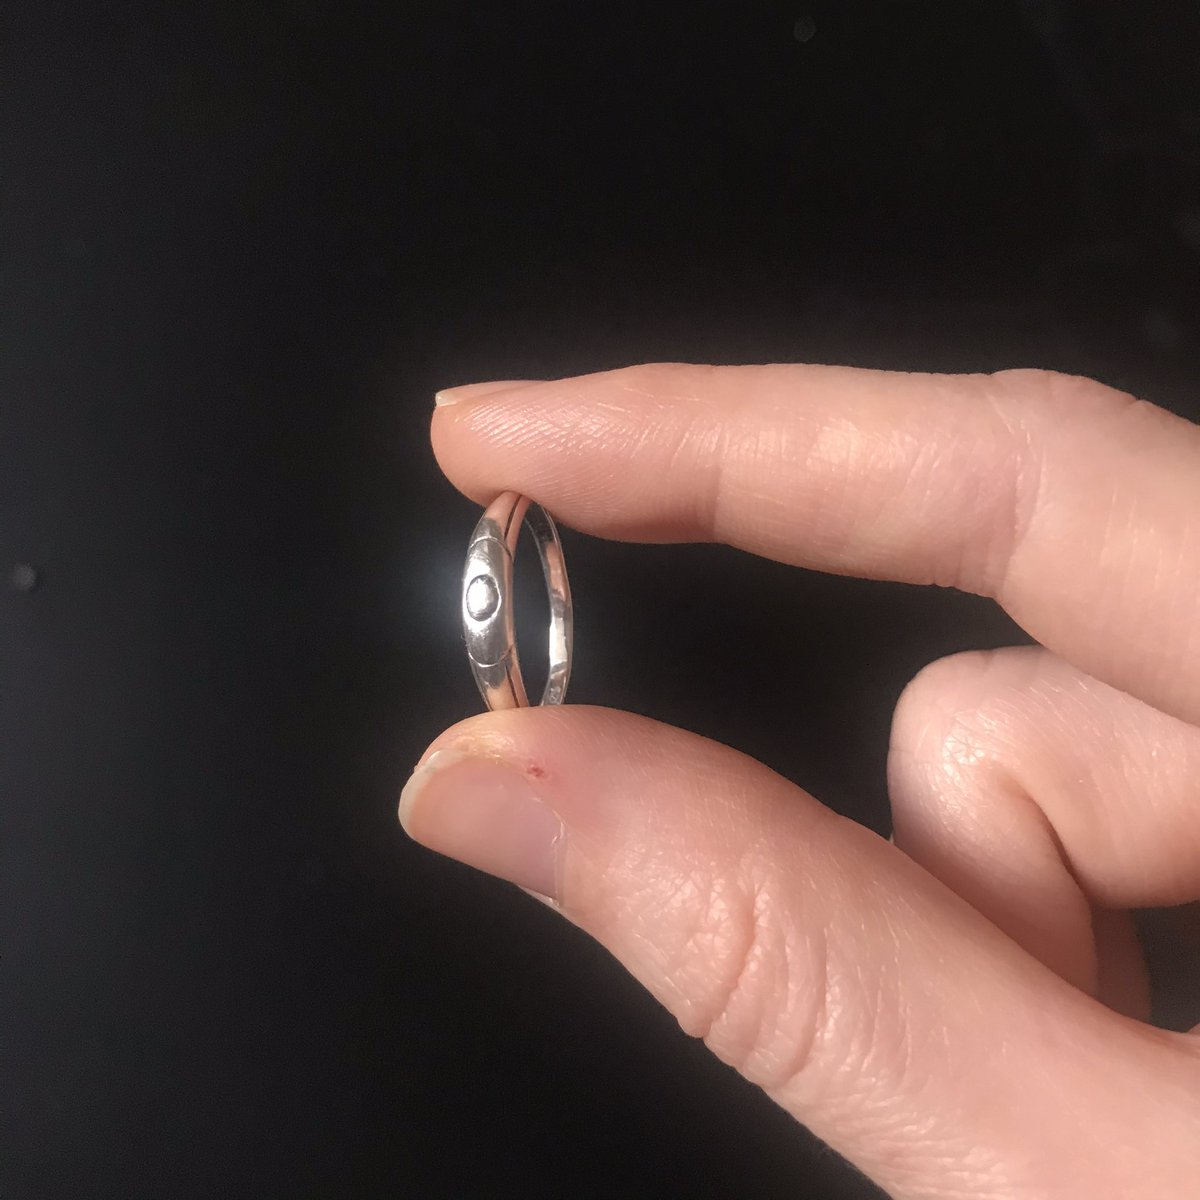 #ObjectMemories   This very basic and boring ring:  Over the past 14 years, this boring ring has come to remind me of significant moments and different senses of home. https://t.co/4FAiQhrH8R https://t.co/ywjFCojoT8